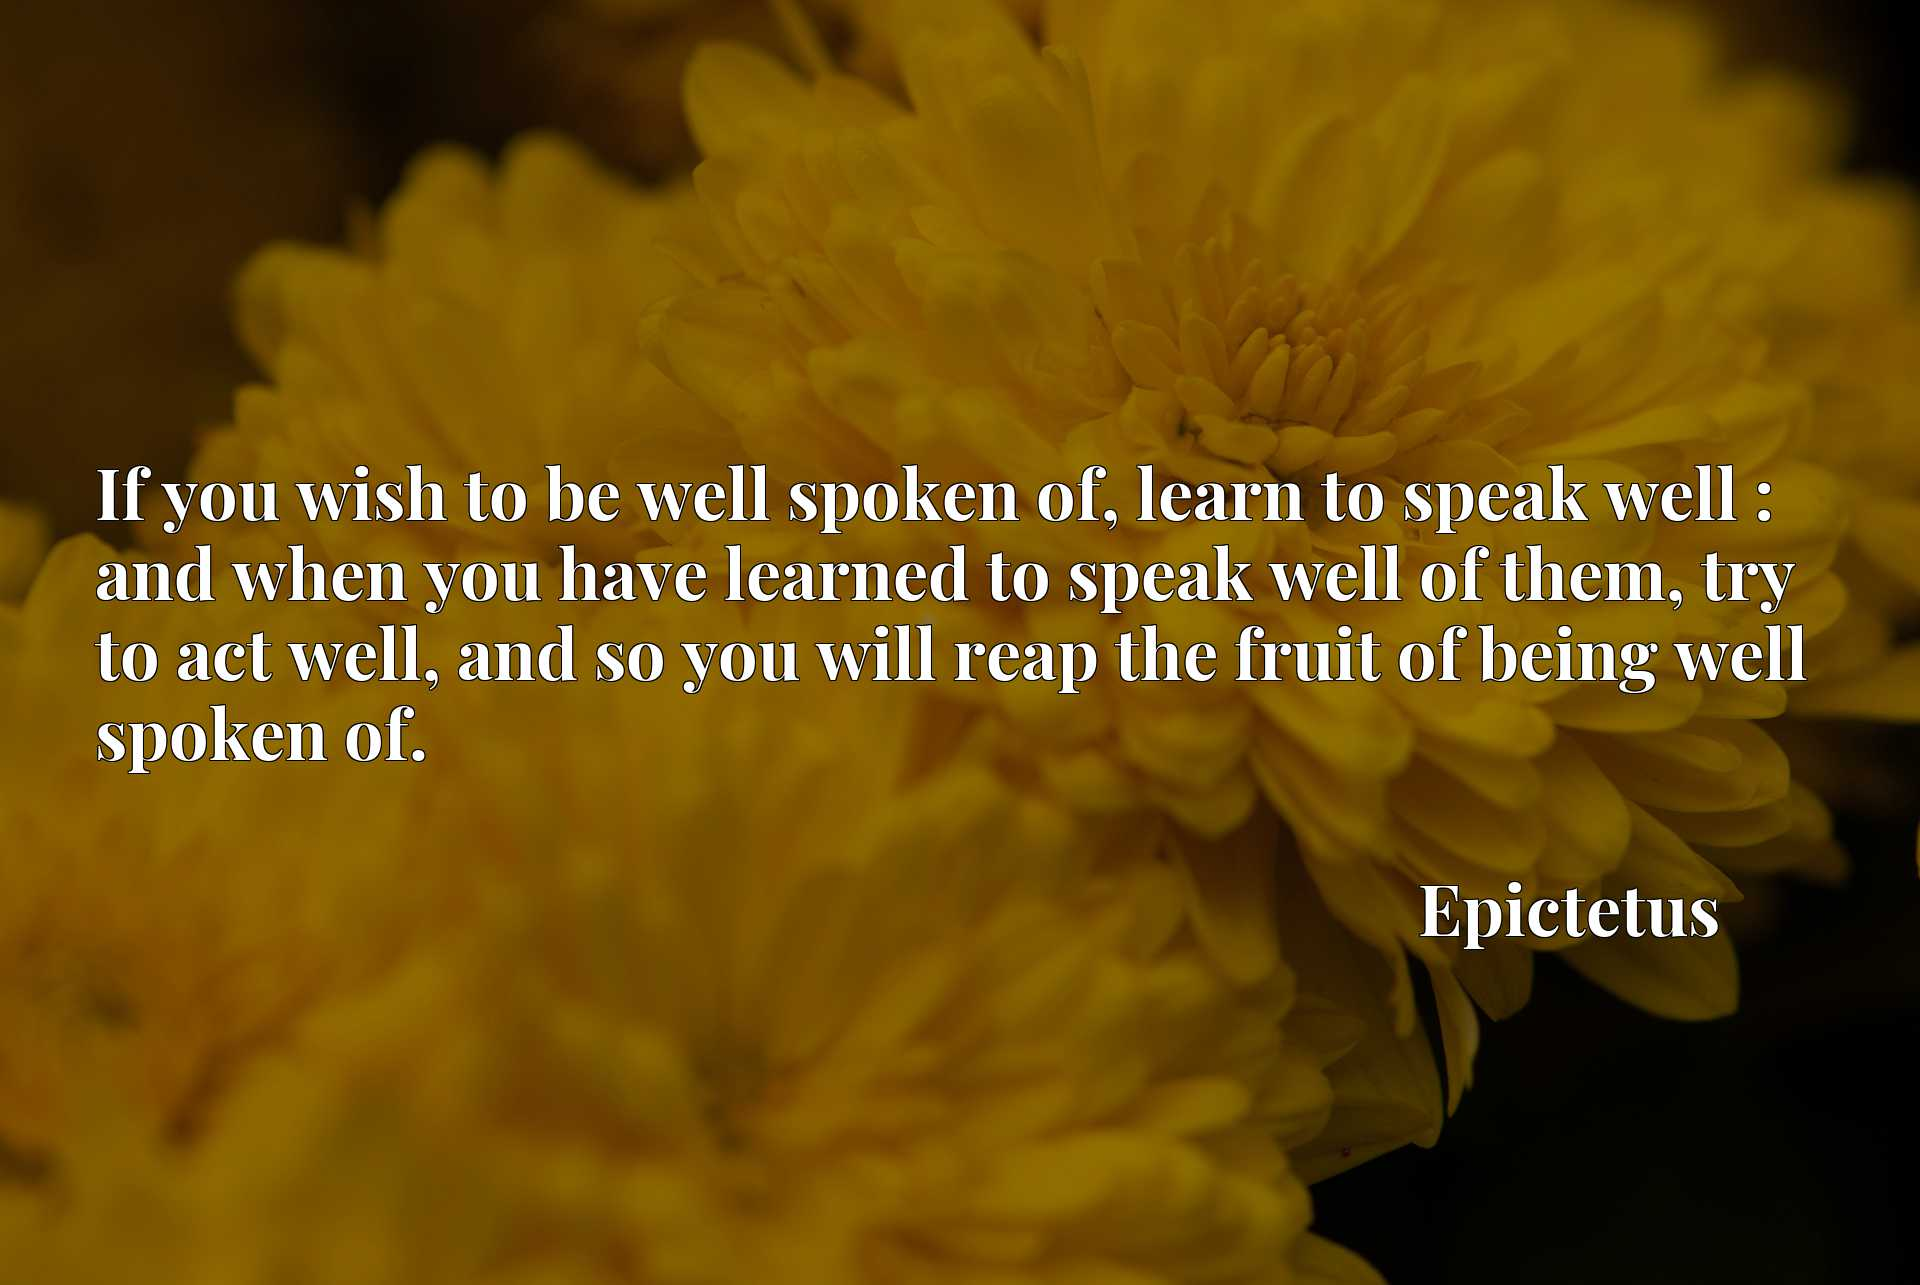 If you wish to be well spoken of, learn to speak well : and when you have learned to speak well of them, try to act well, and so you will reap the fruit of being well spoken of.